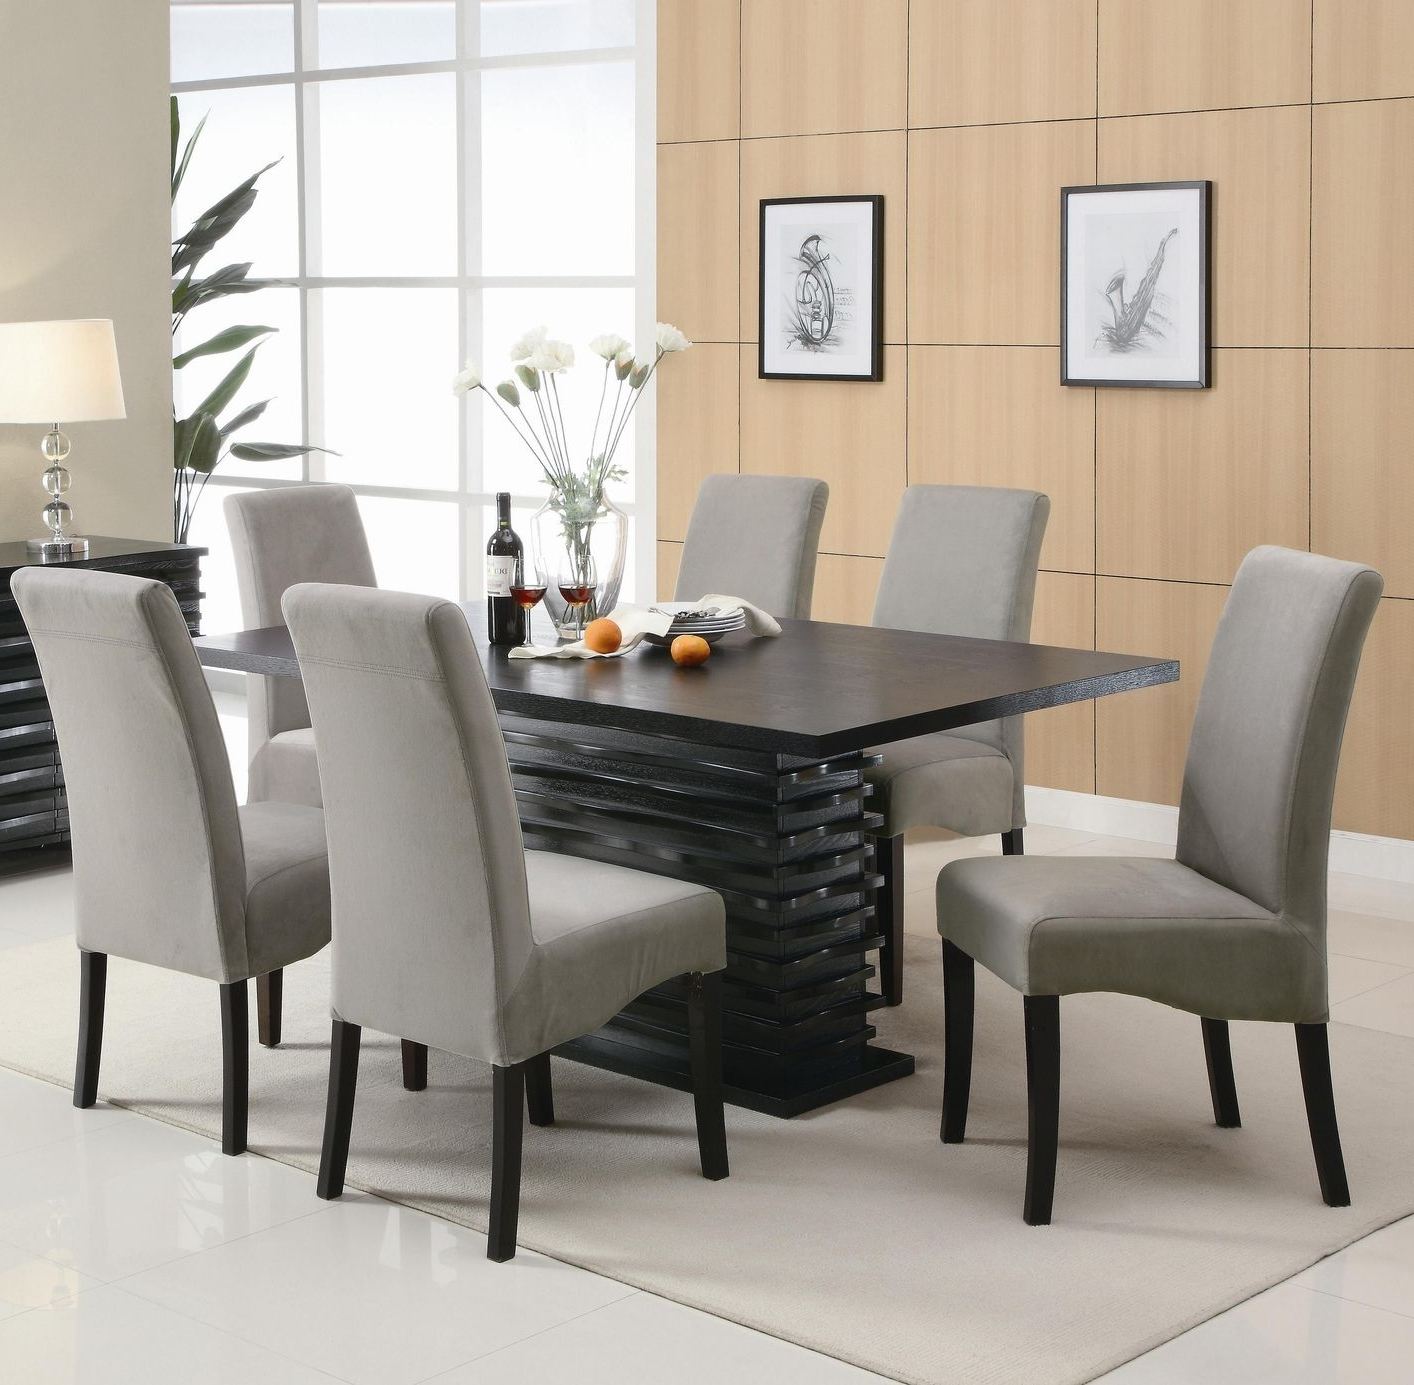 Fashionable Contemporary Dining Room Tables And Chairs With Regard To Stanton Black And Green Wood Dining Table Set – Steal A Sofa (View 18 of 25)